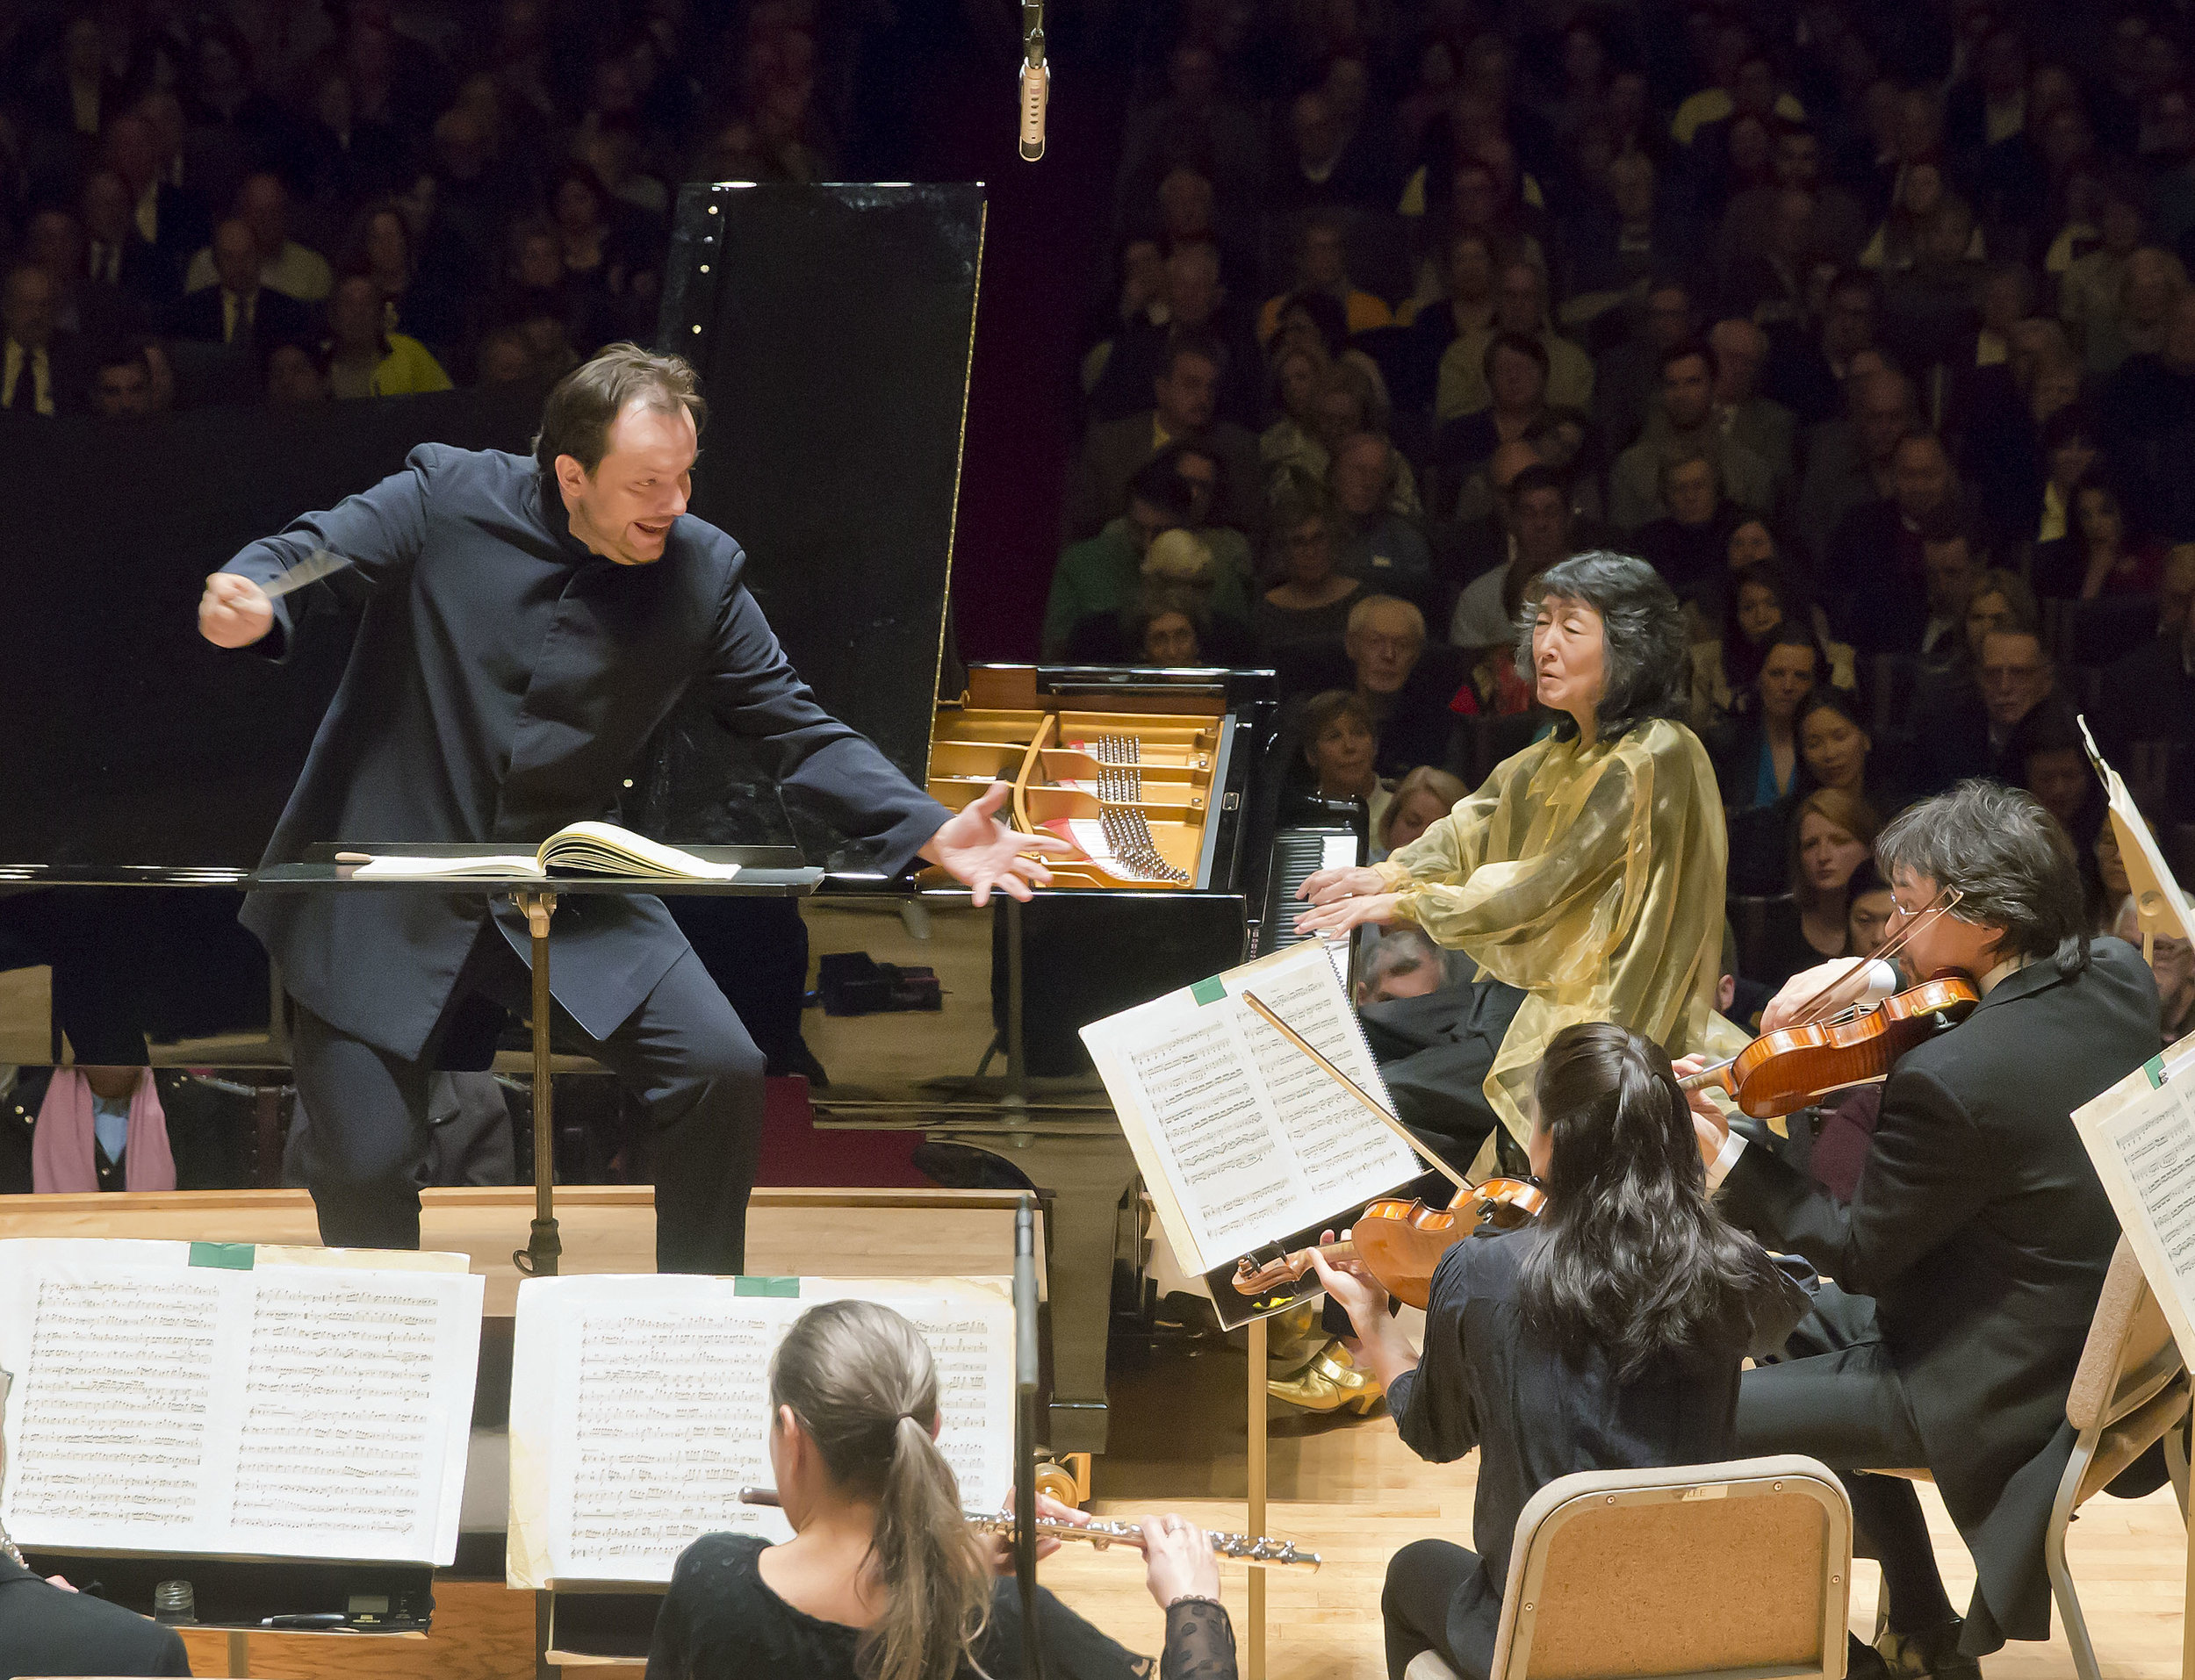 Andris Nelsons conducts the Boston Symphony Orchestra, with Mitsuko Uchida, piano, Thursday, April 13, 2017. Winslow Townson photograph.